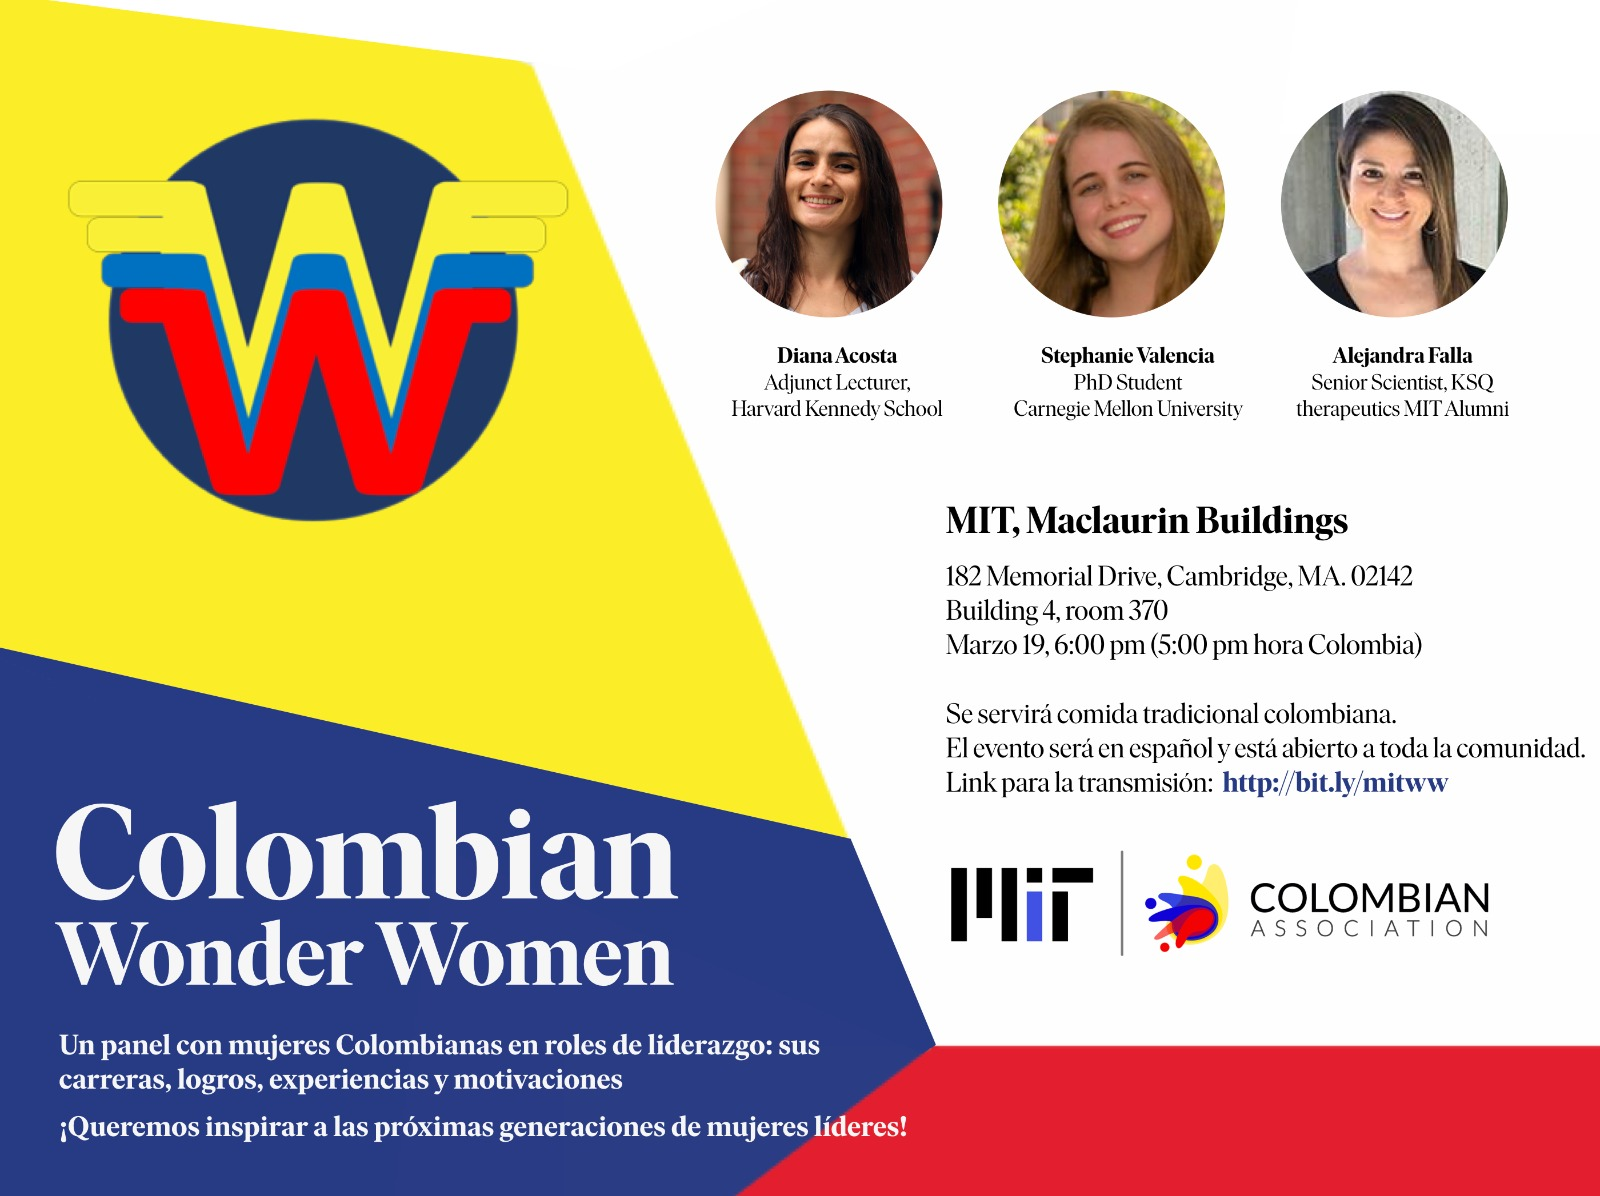 Colombian Wonder Women